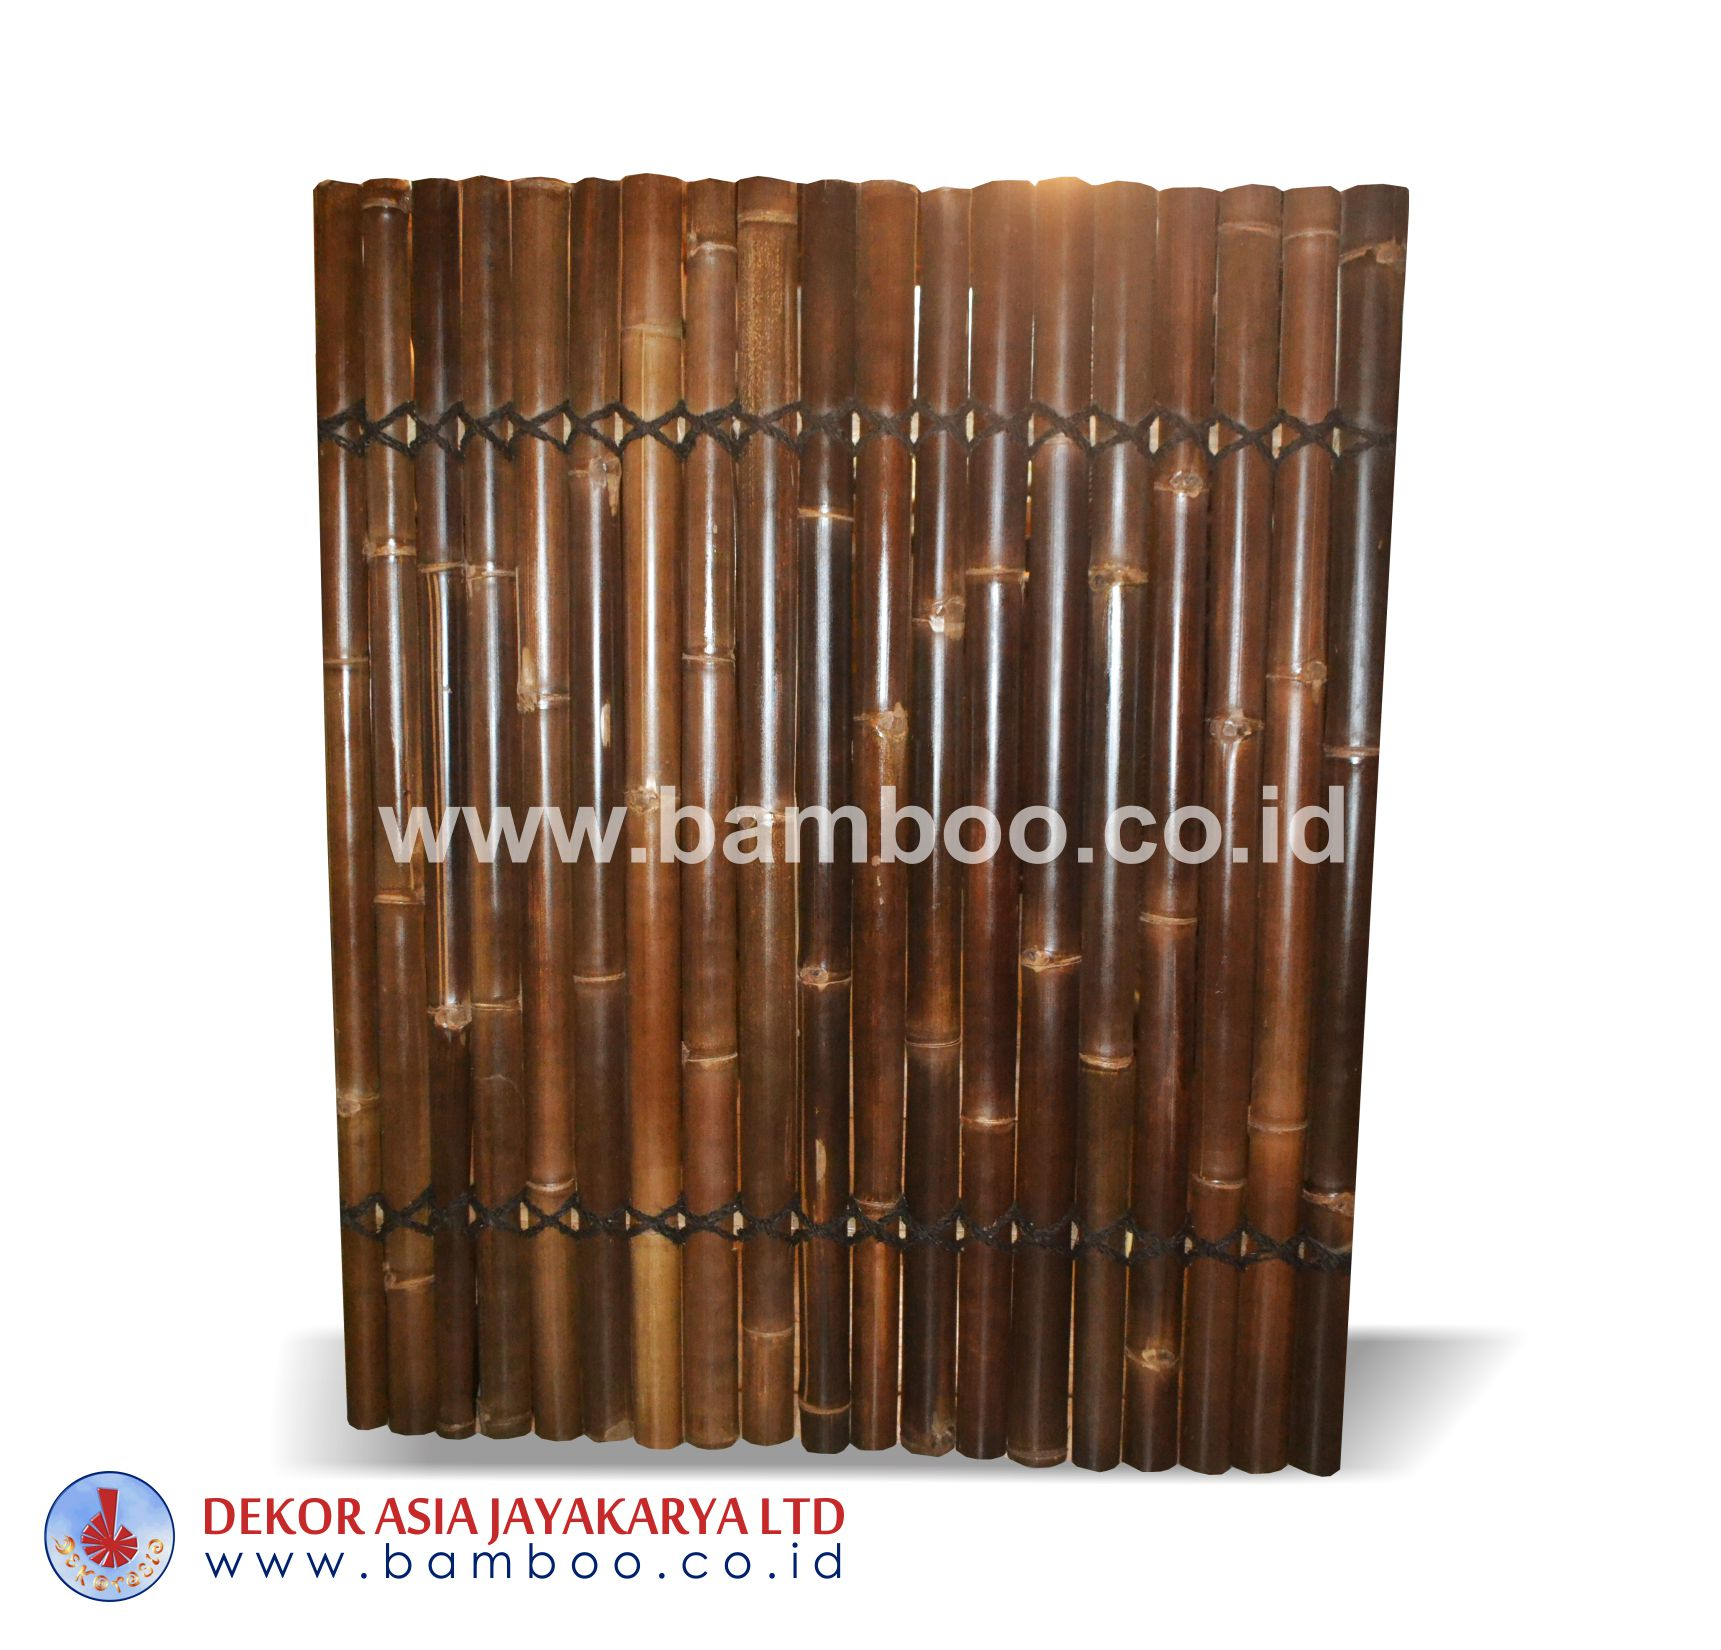 Half cut Black bamboo fence 2 back slats black coco rope